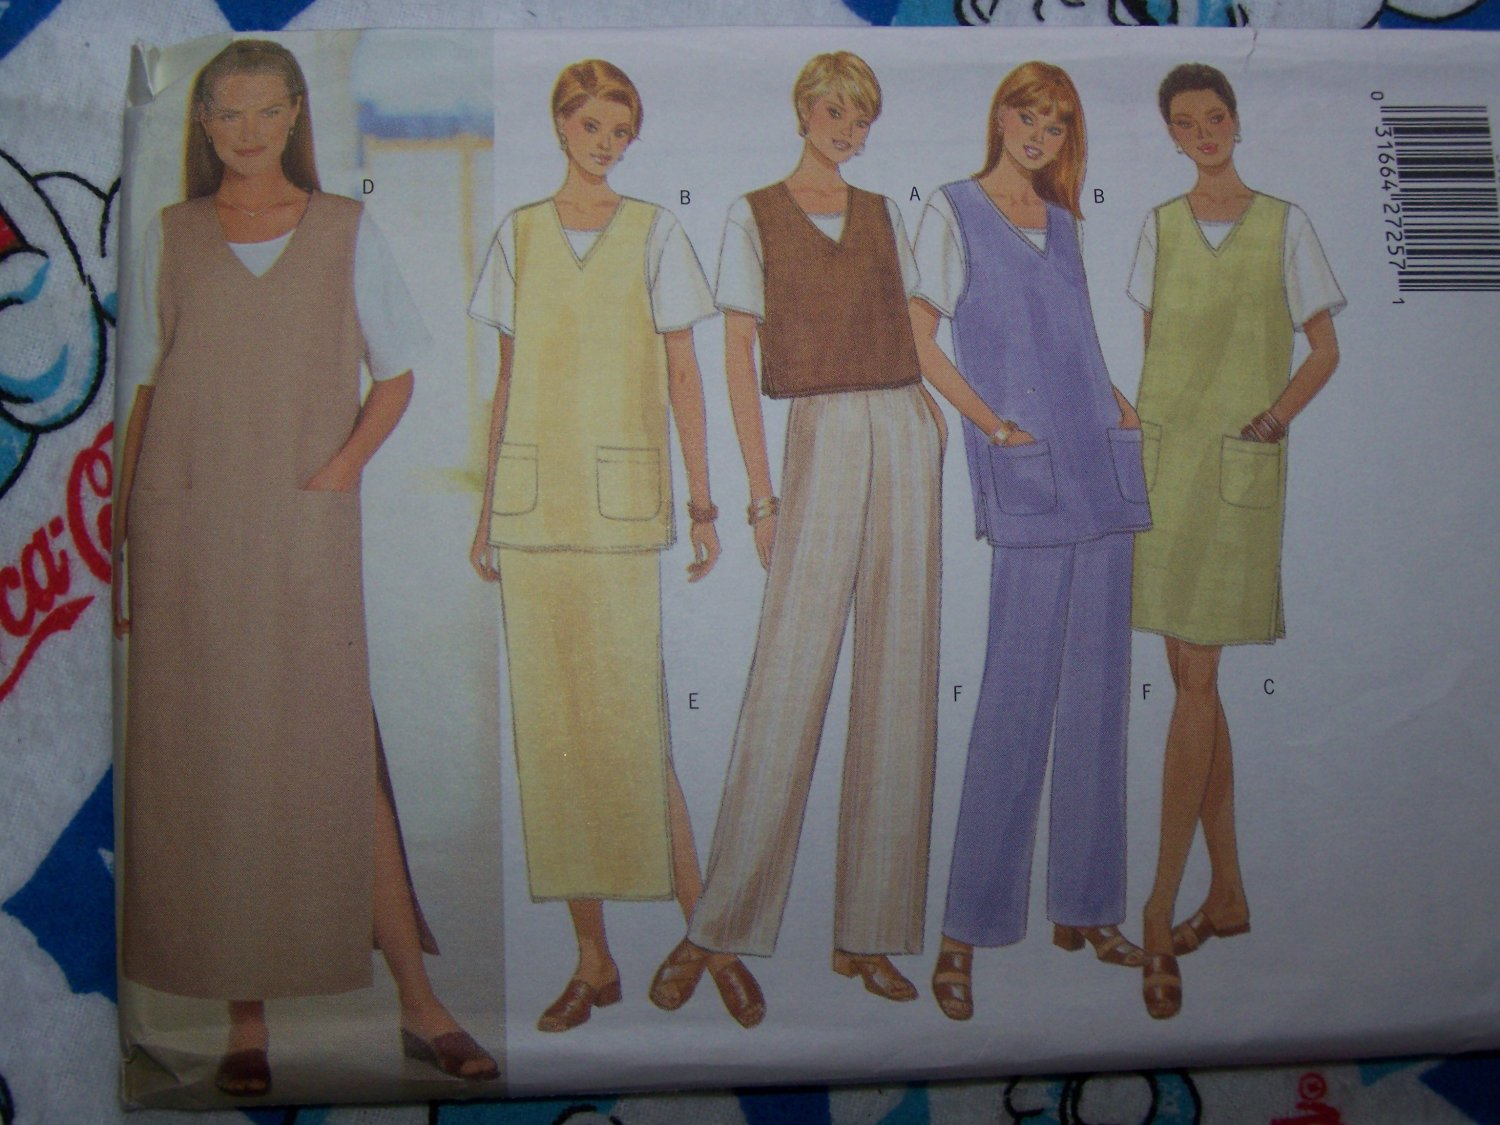 Free USA S&H NEW Sewing Pattern 5468 Plus Size 18 20 22 Vest Jumper Dress Tunic Top SKirt Pants